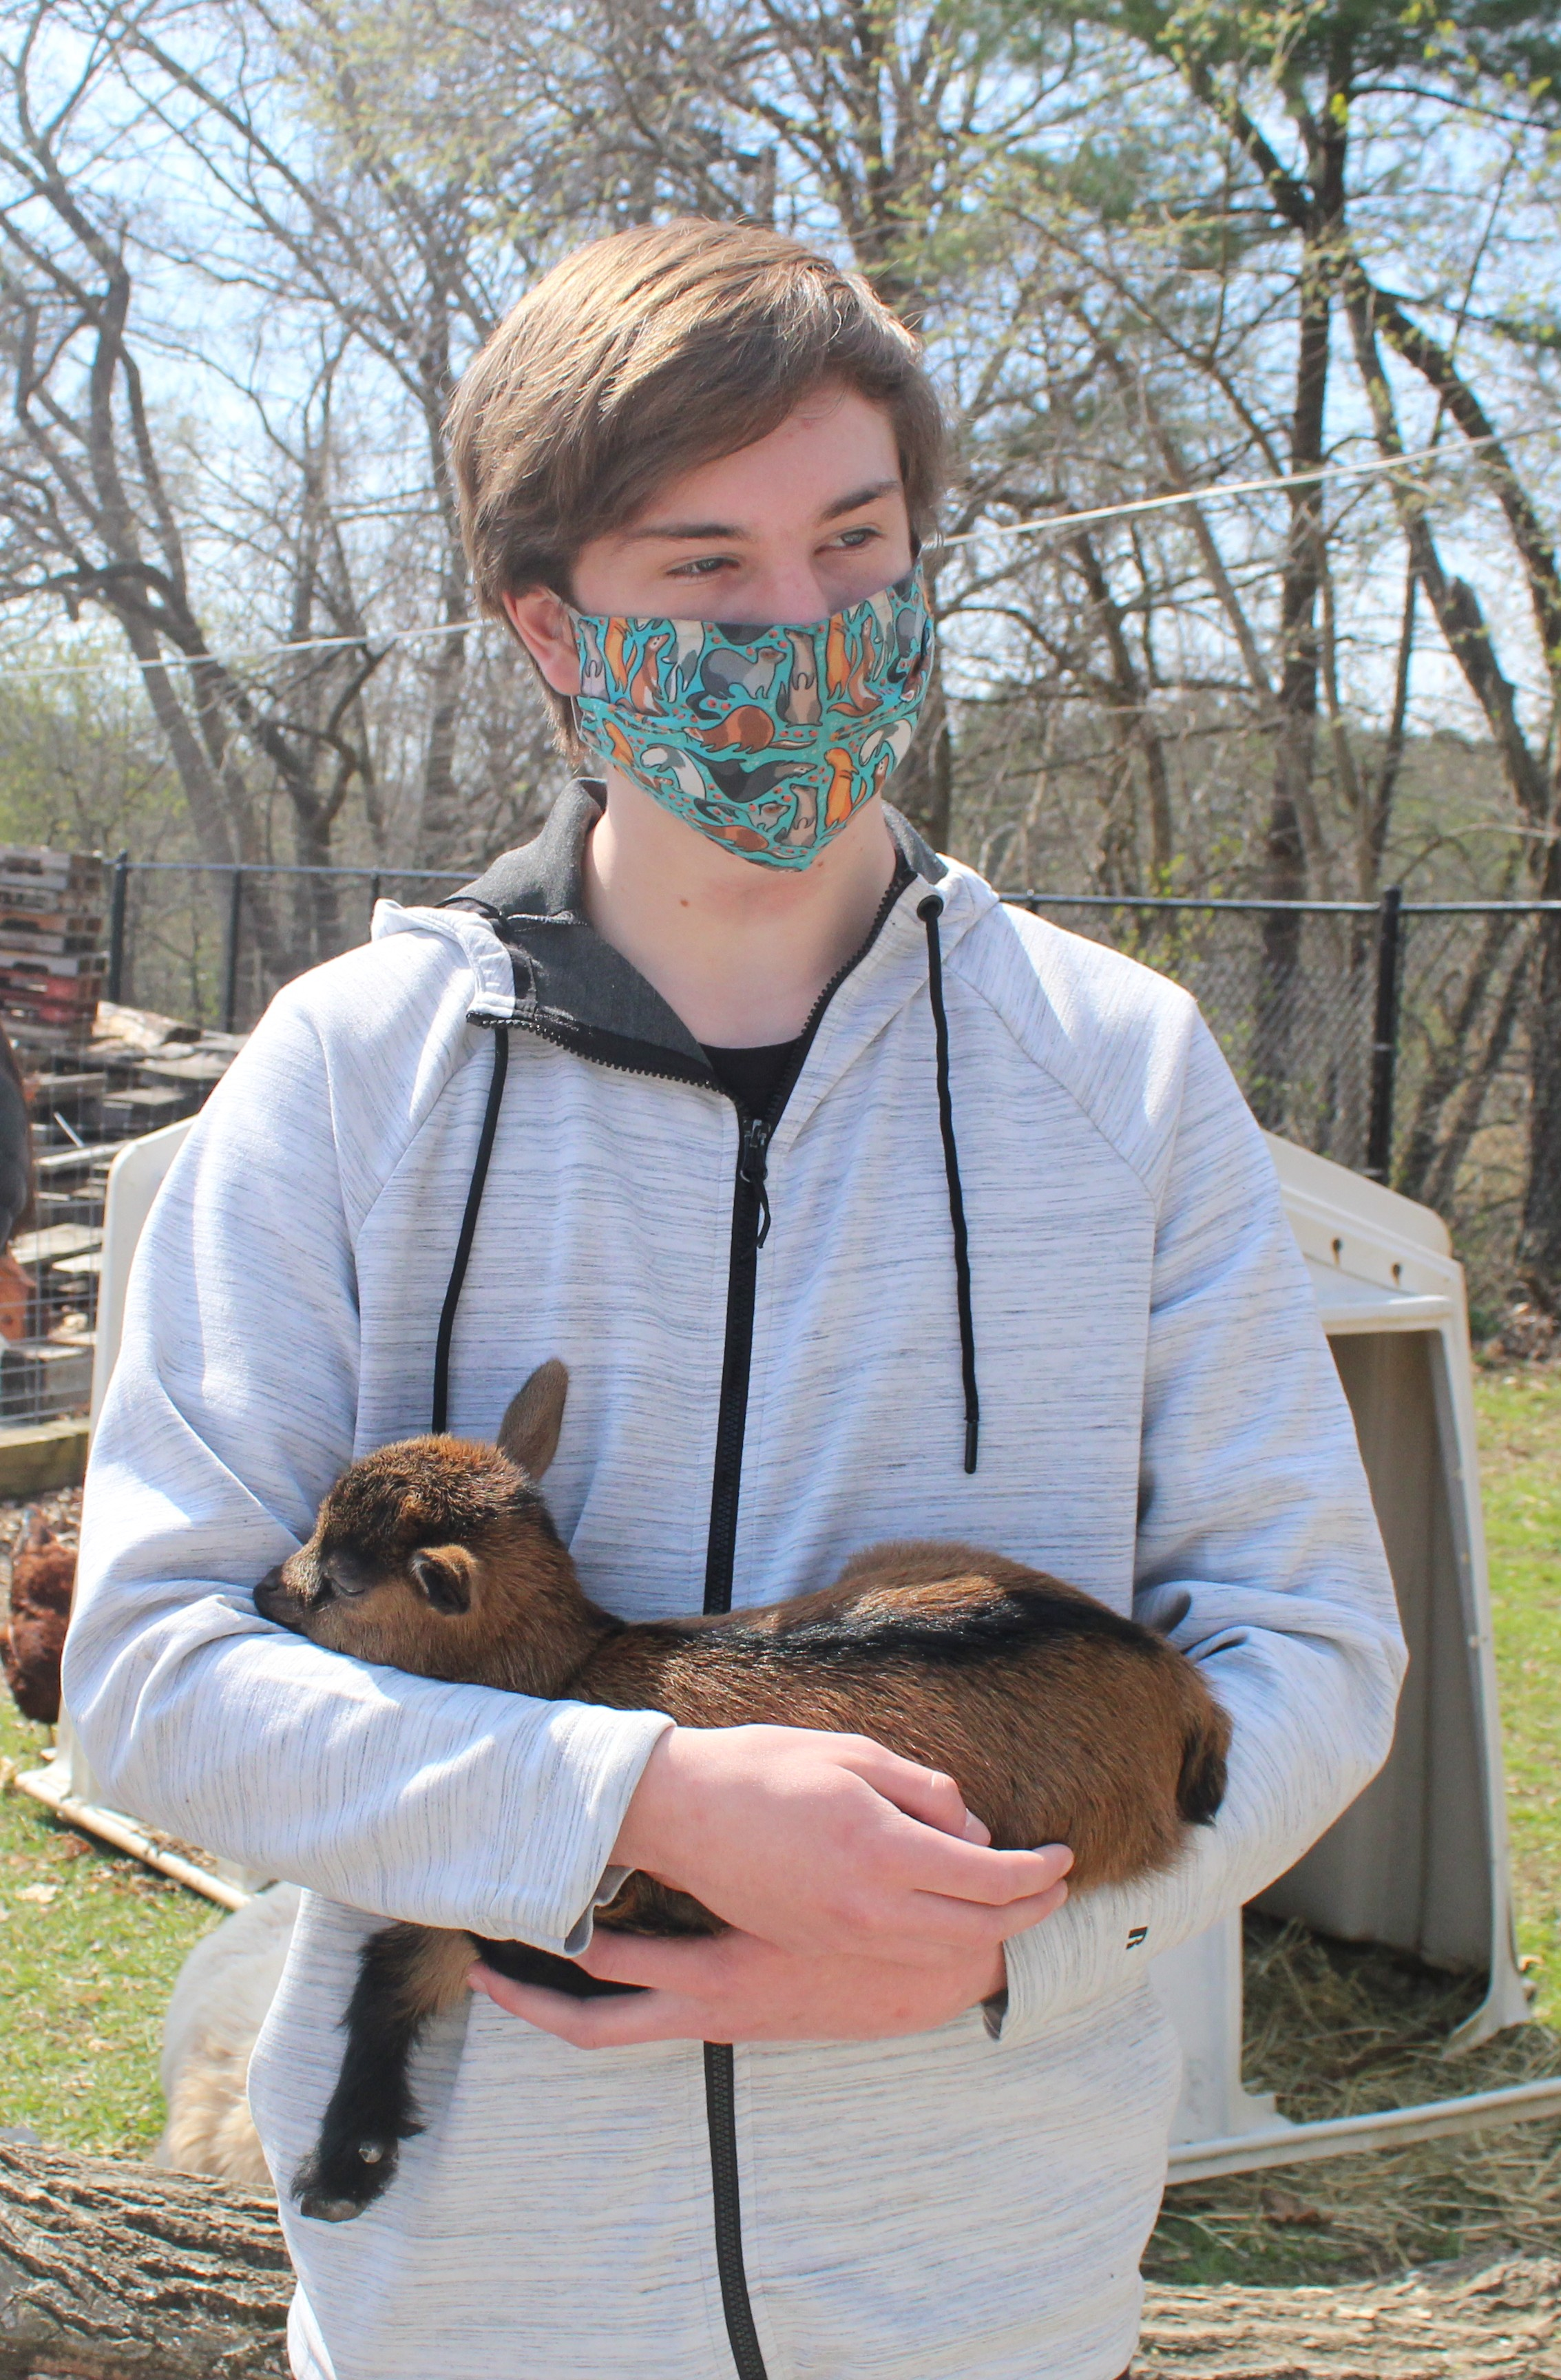 <strong>Phil Roberts, an 11th-grade student at Housatonic Valley Regional High School, held a Nigerian dwarf kid at the agricultural education barn on Tuesday, April 20.</strong><em><strong>Photoby Patrick L. Sullivan</strong></em>